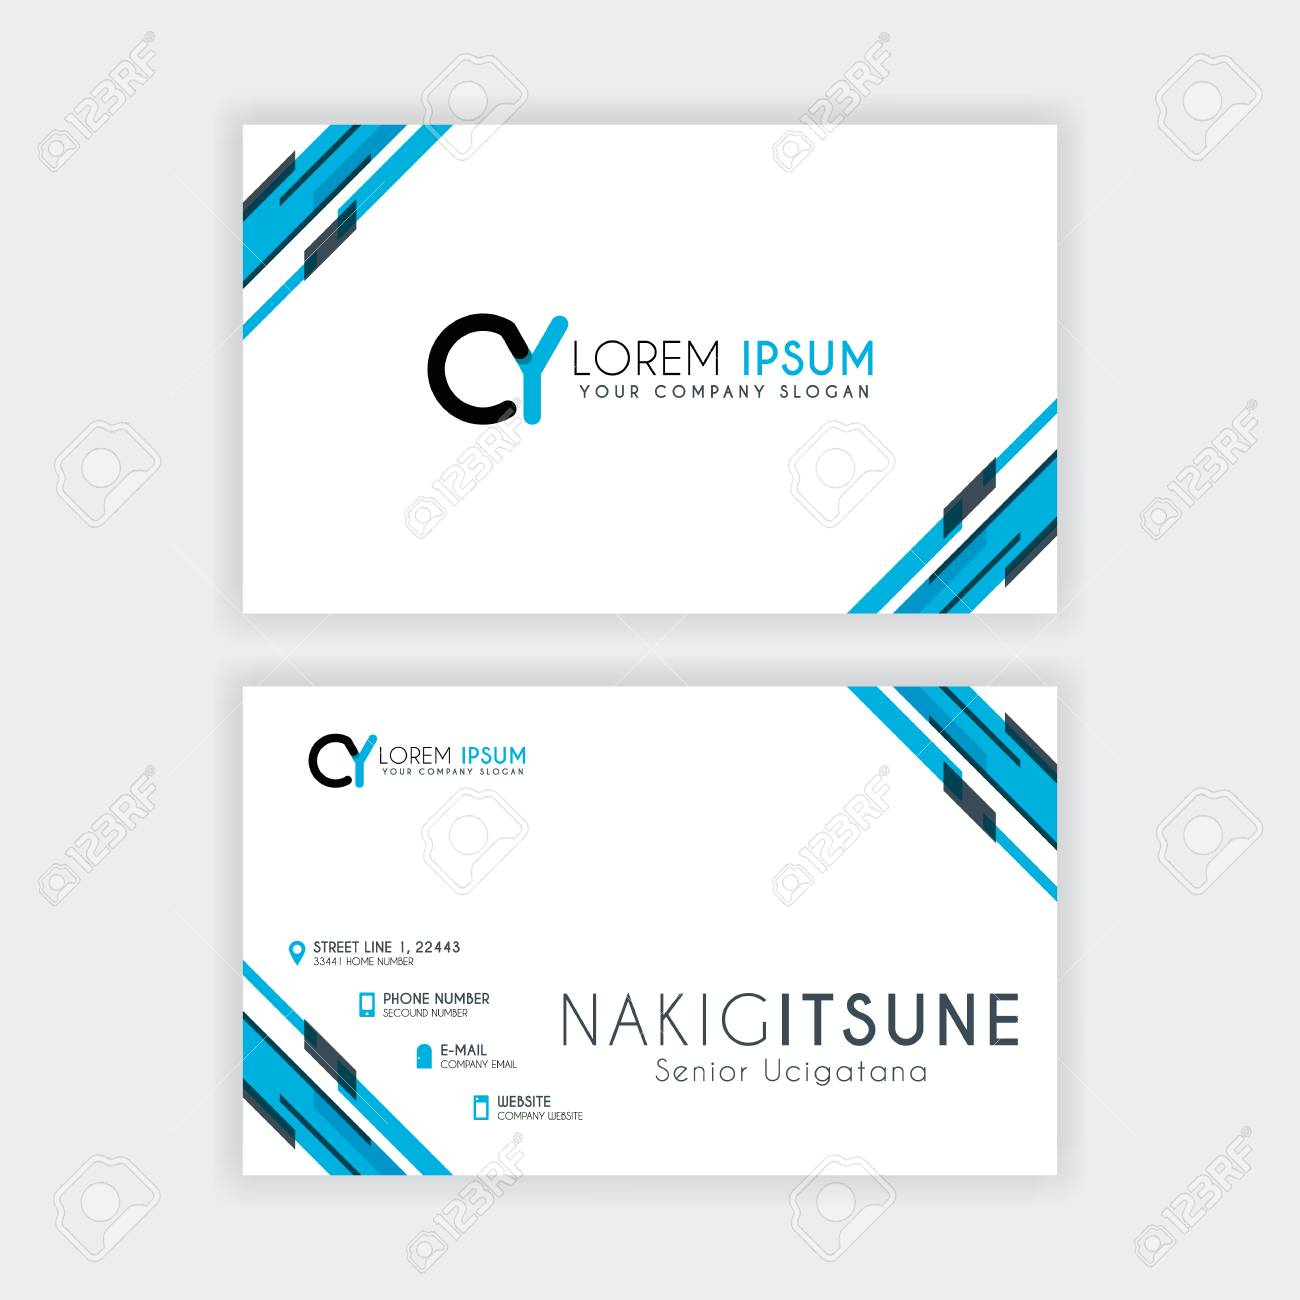 Simple Business Card With Initial Letter Cy Rounded Edges With